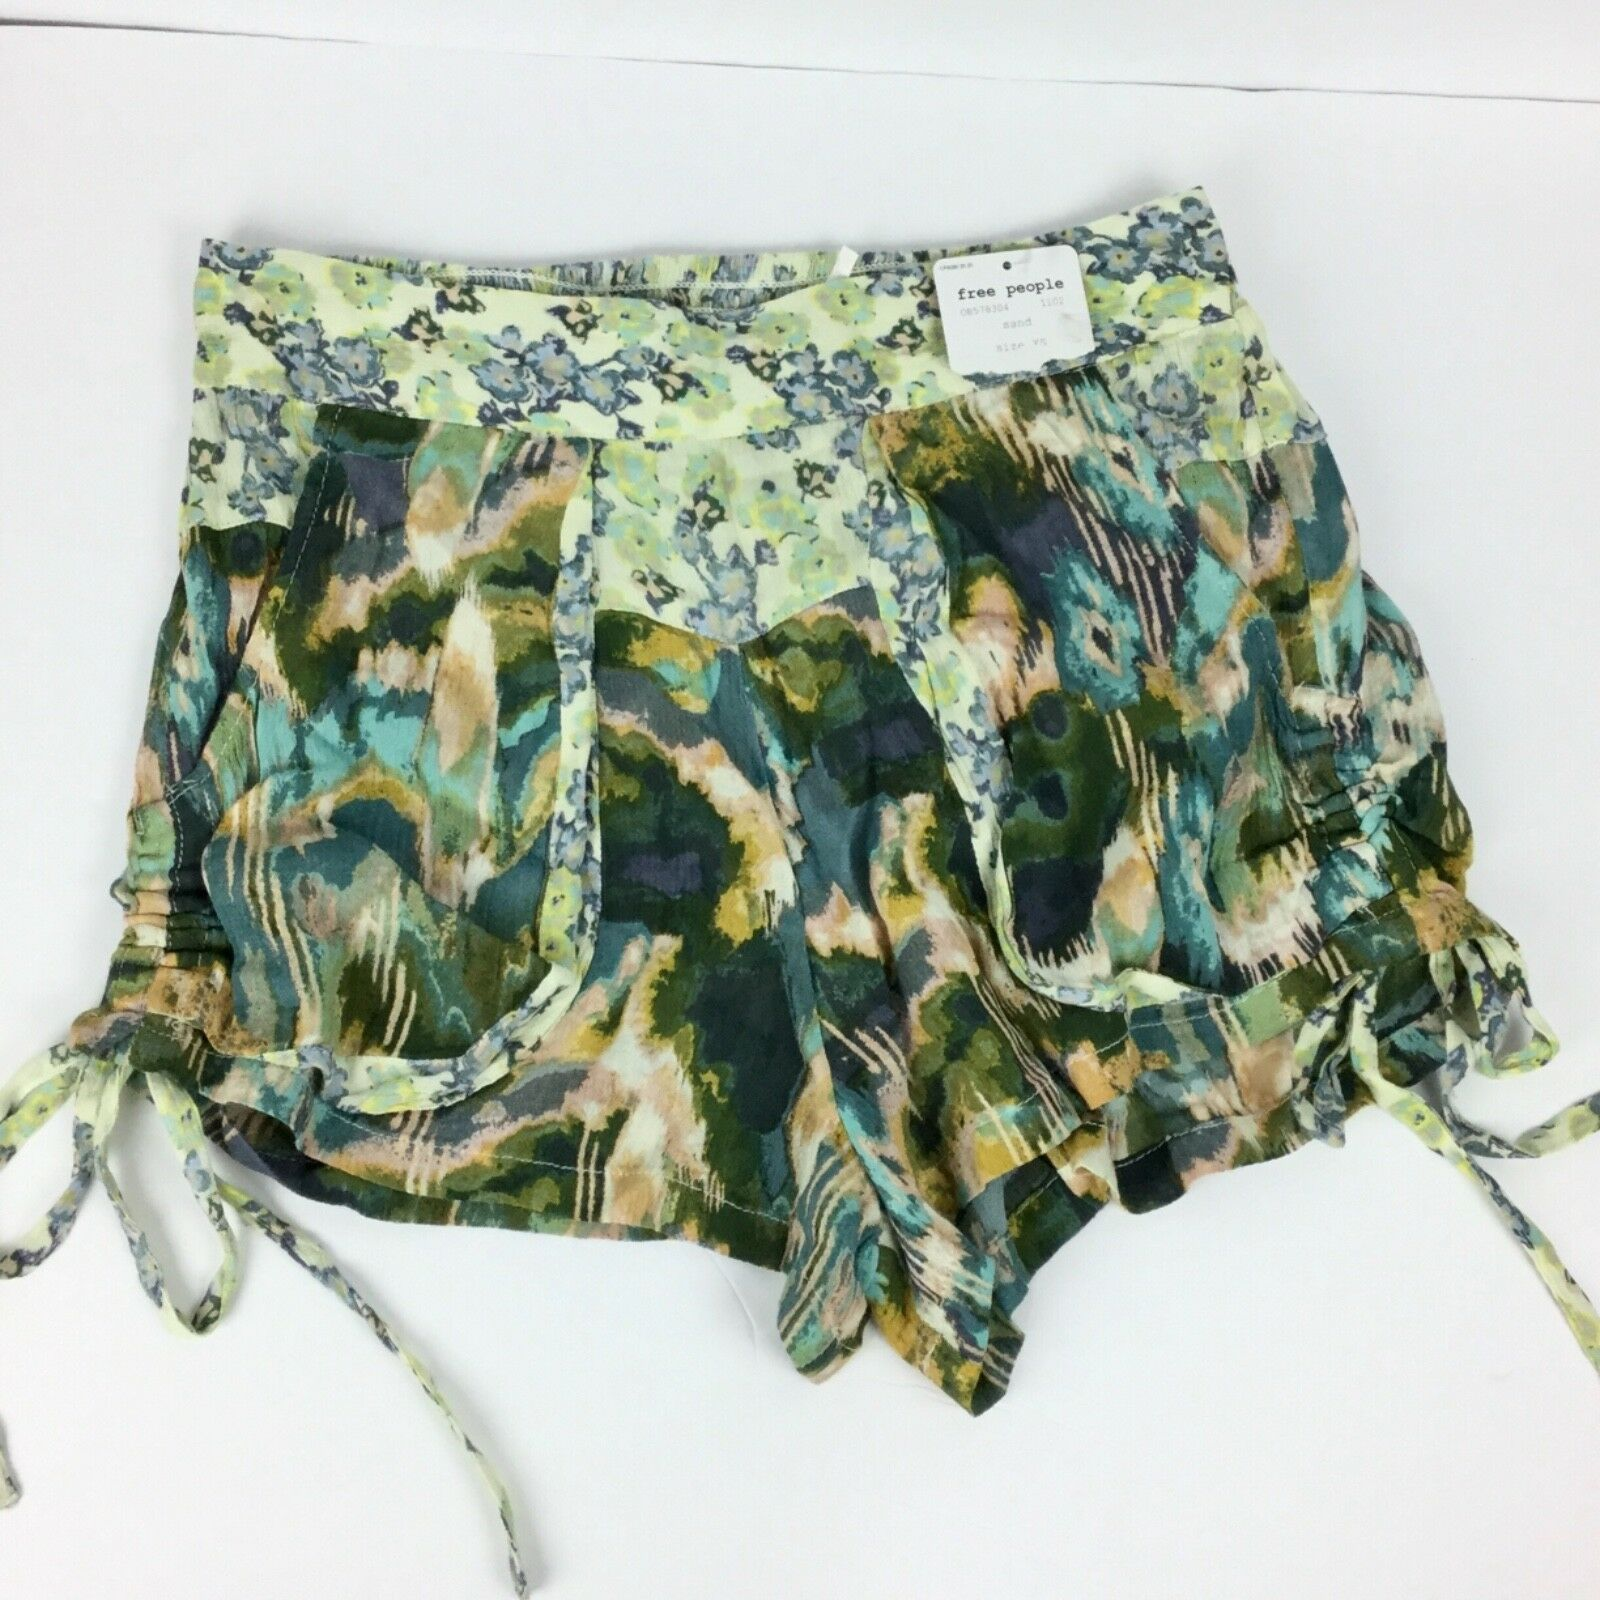 Free People Womens XS Shorts Elastic Libson NWT Casual Green Side Tie A15-23